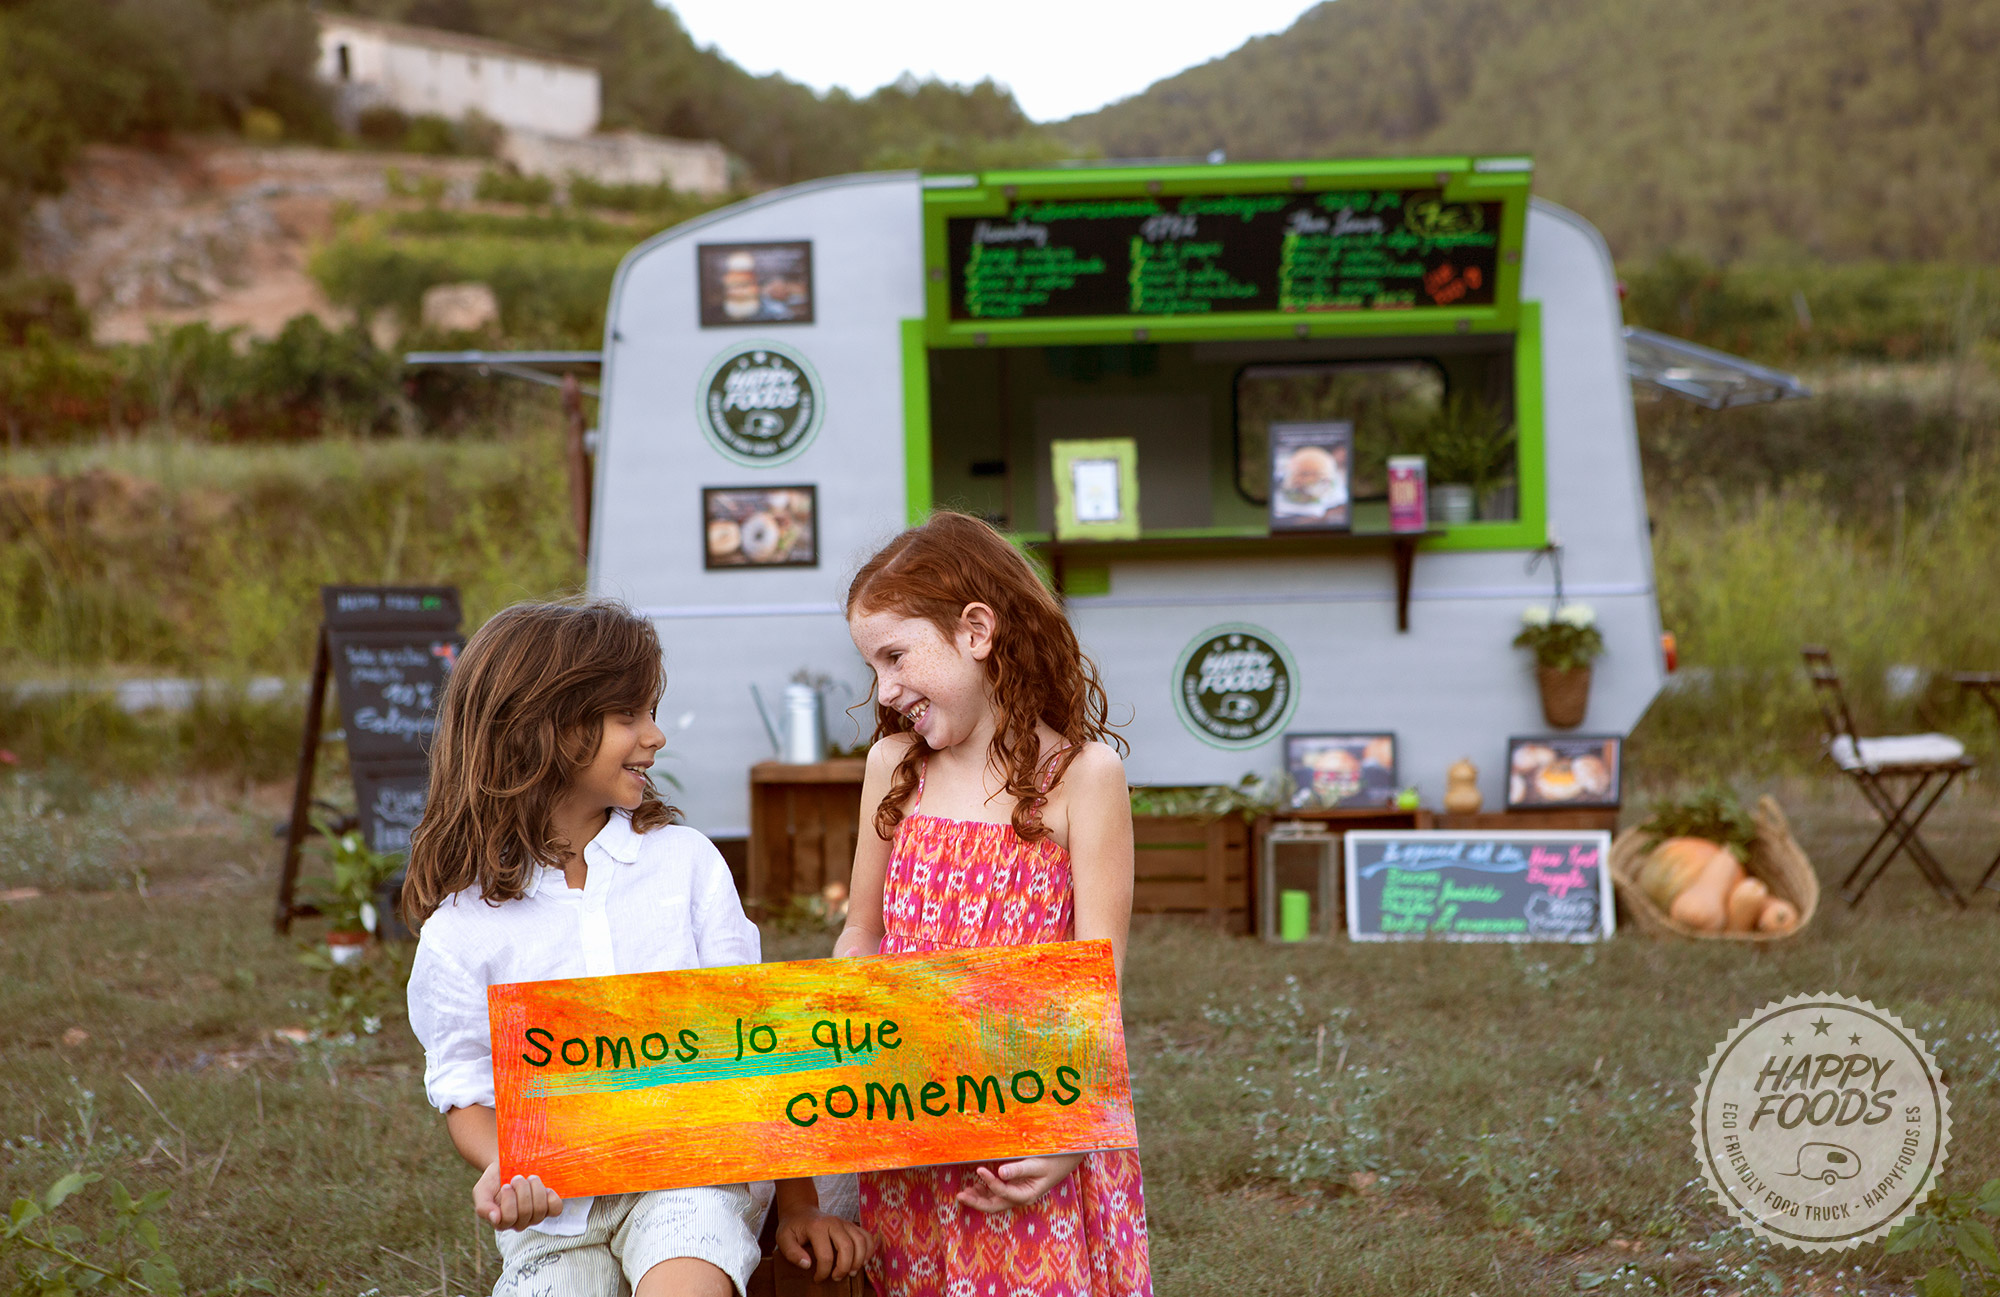 HAPPY FOODS TRUCK - ECO FRIENDLY FOOD TRUCK